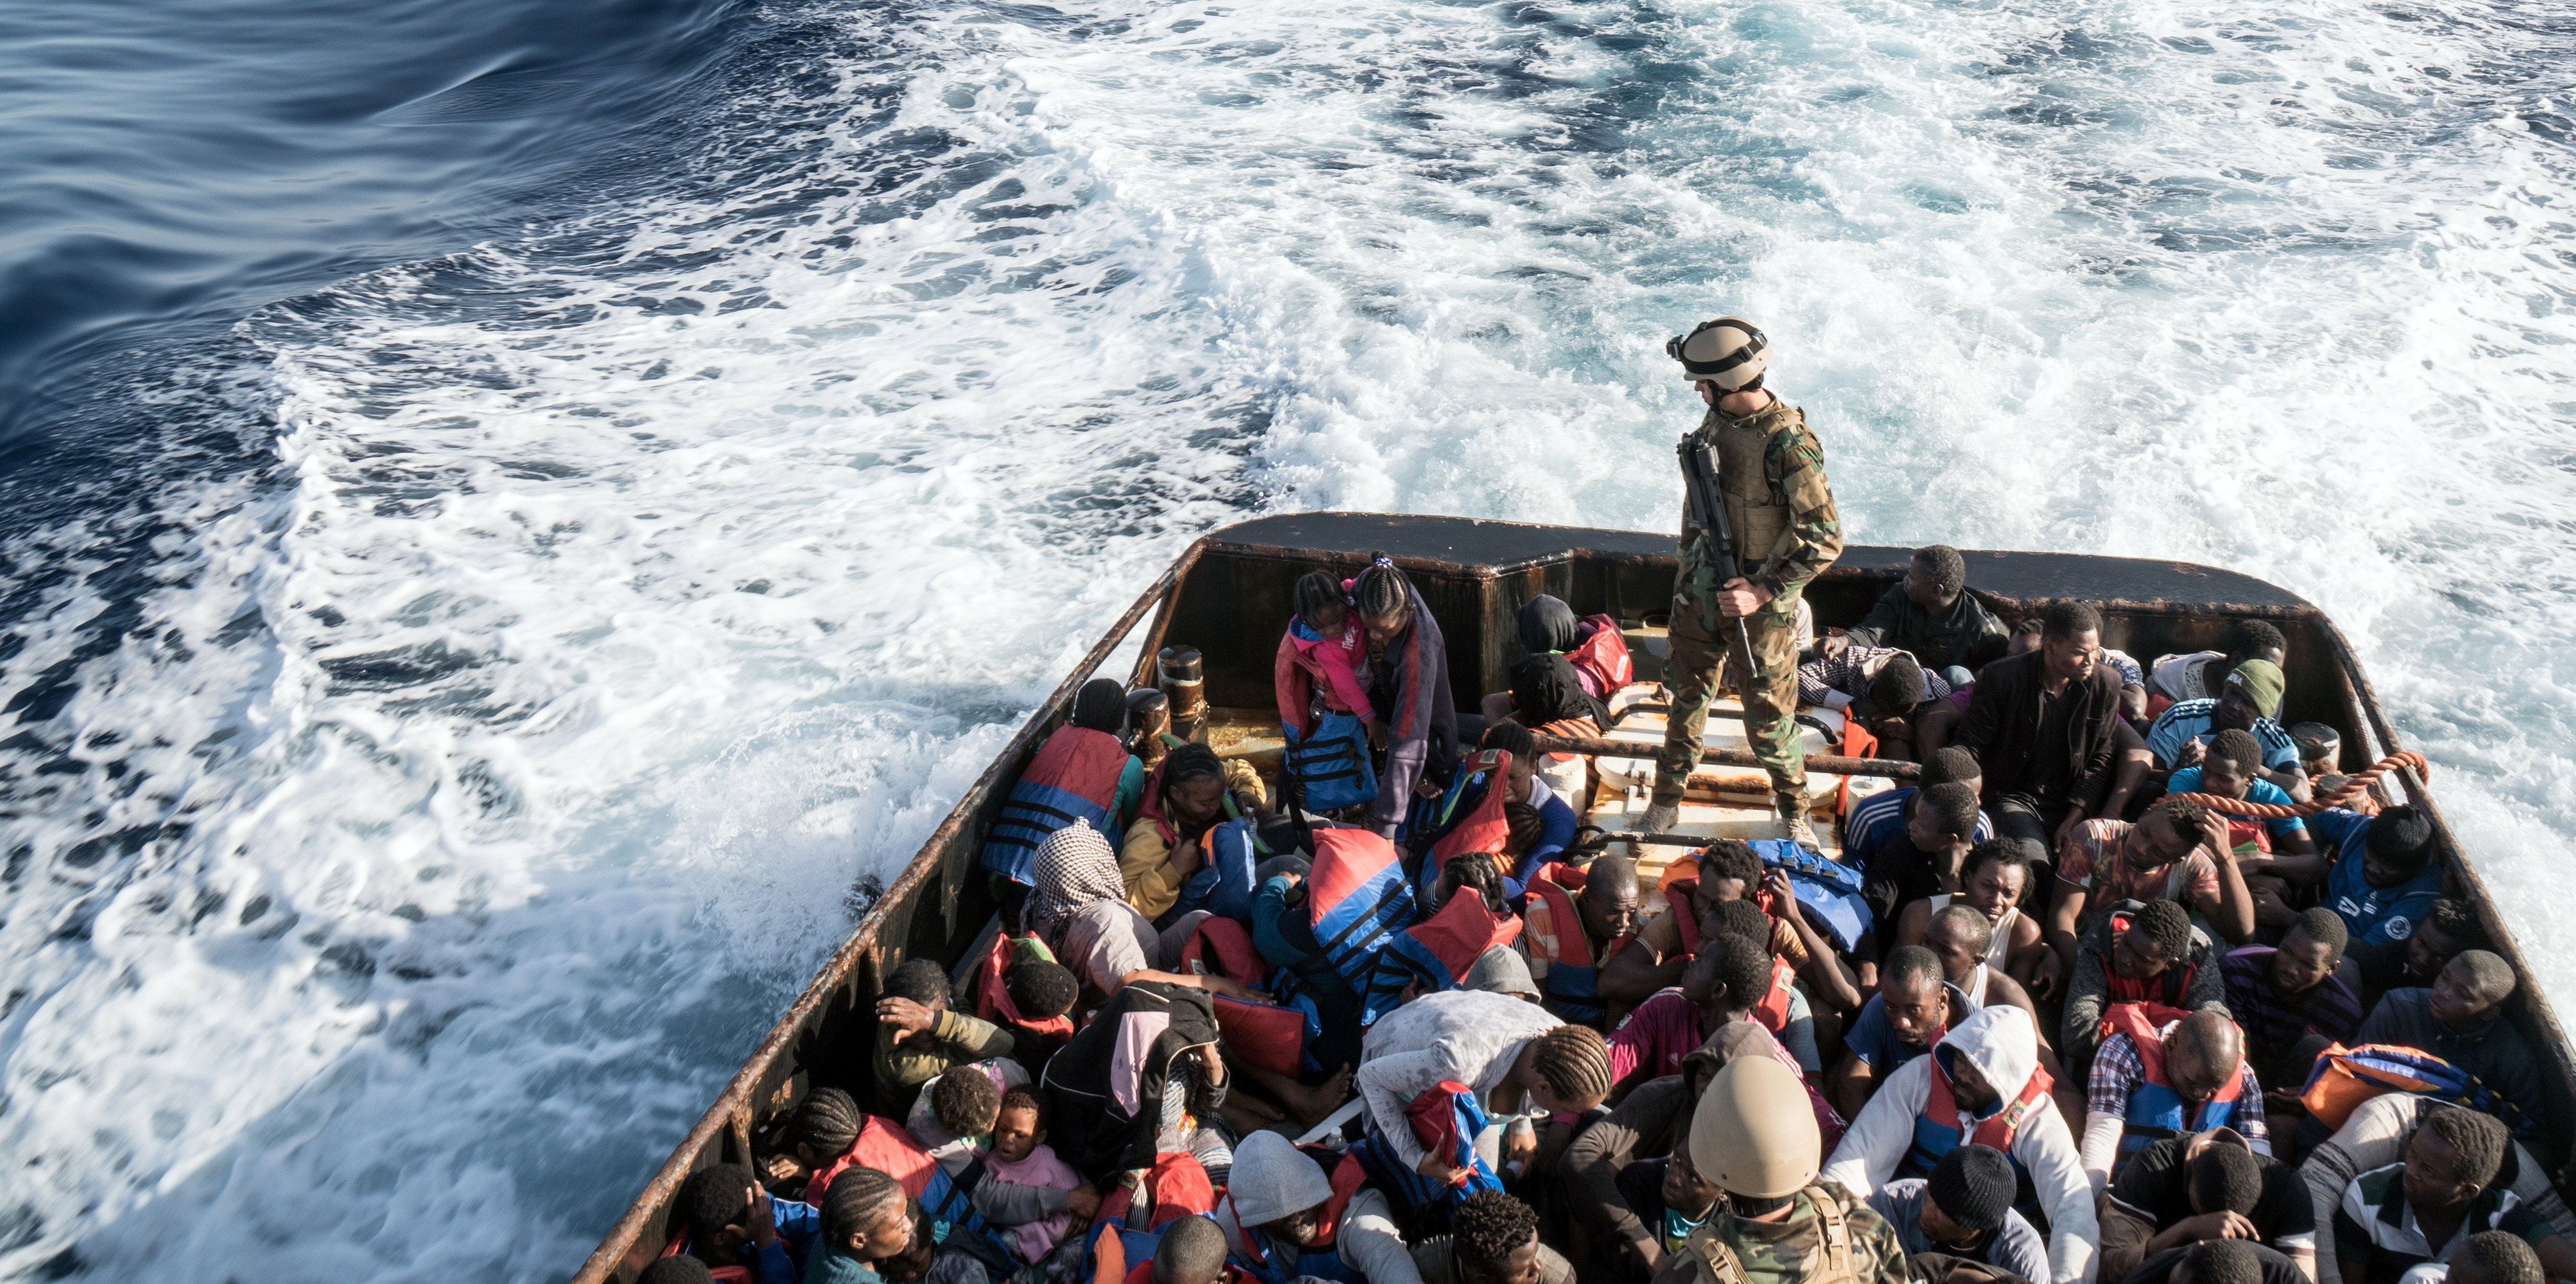 Border guards have argued in whose waters are